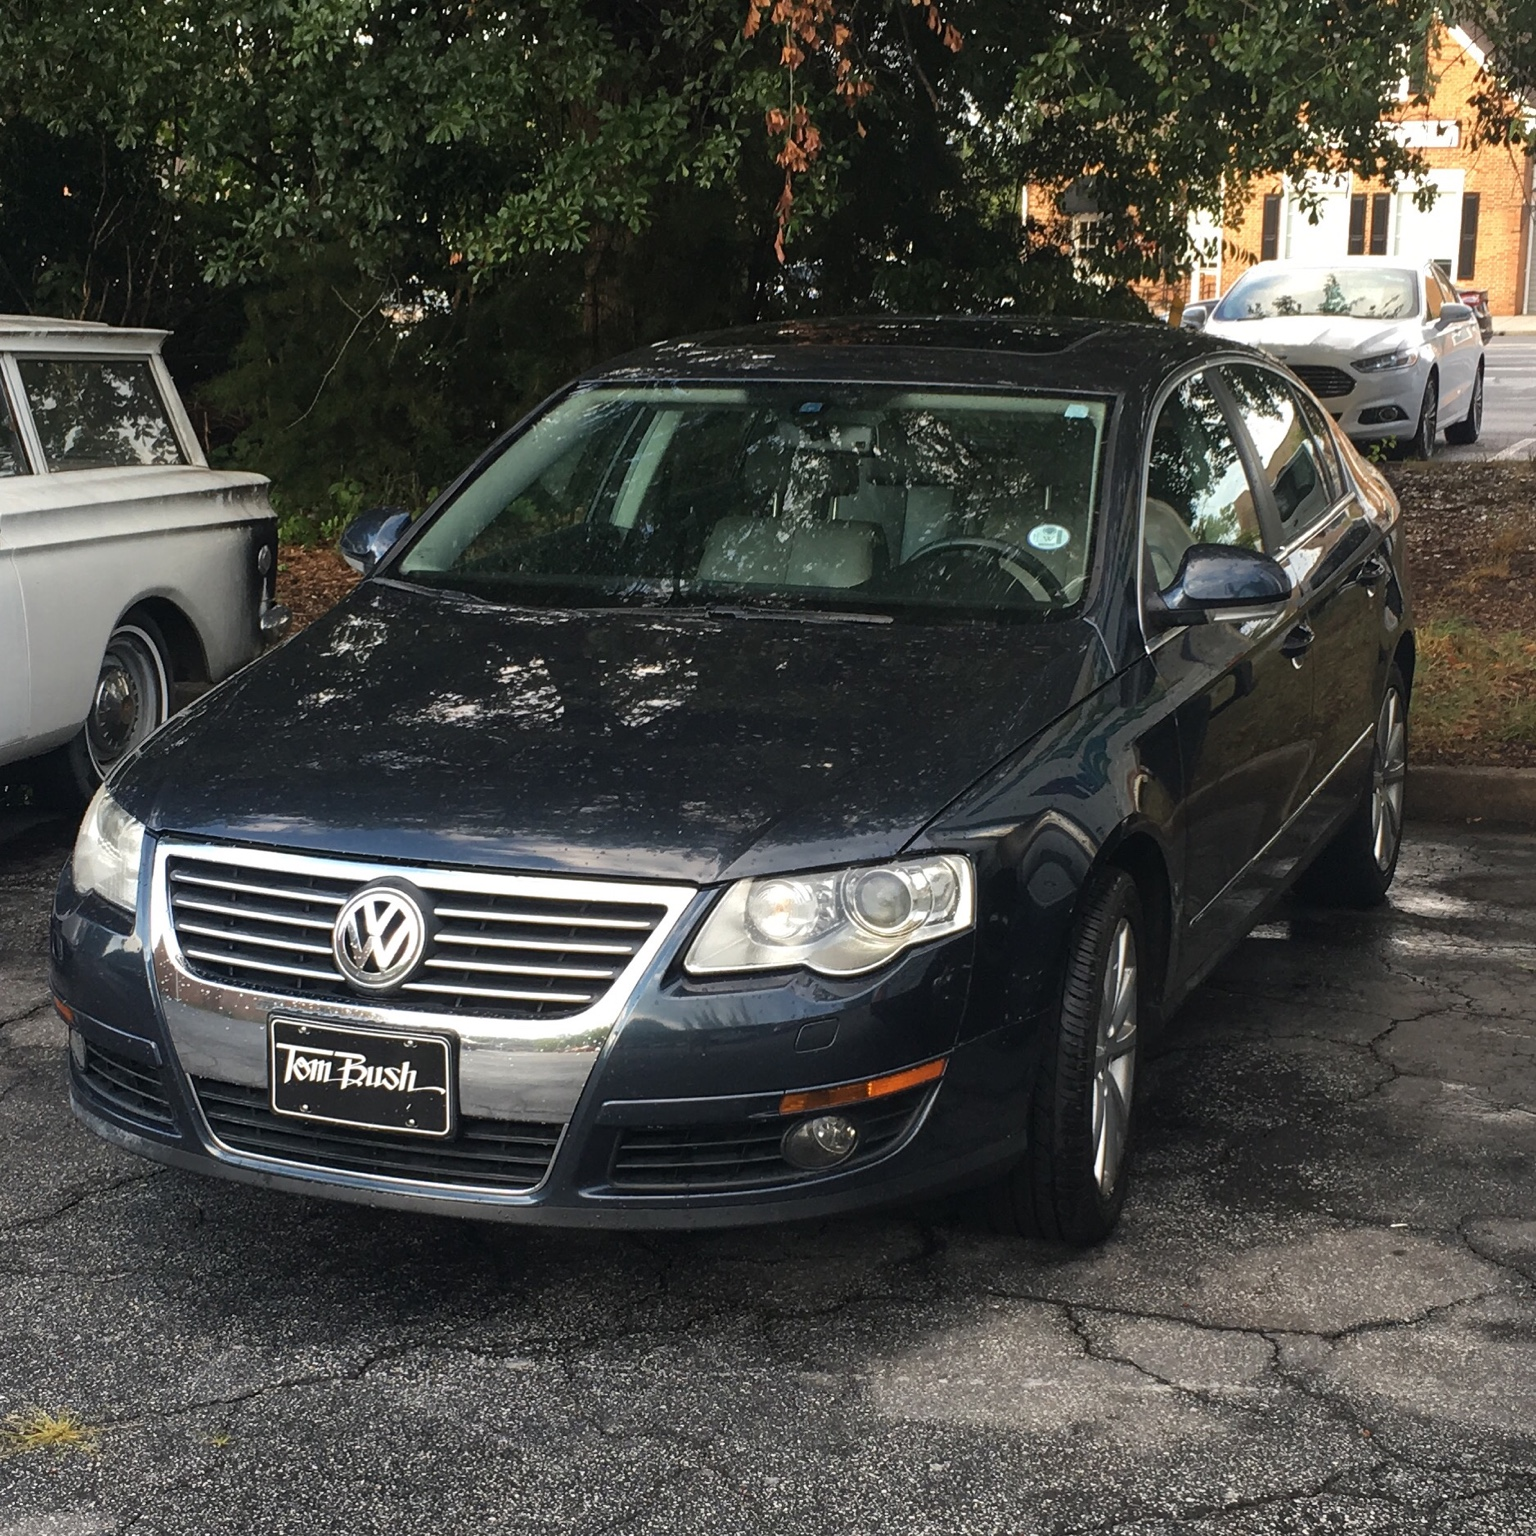 Vwvortexcom 36 24v Vr6 Swap Questions Links Jetta Engine Diagram I Brought Home A Running With Bad Rear Diff Today And After Doing Couple Do Swaps Im Certain This Shouldnt Be Too